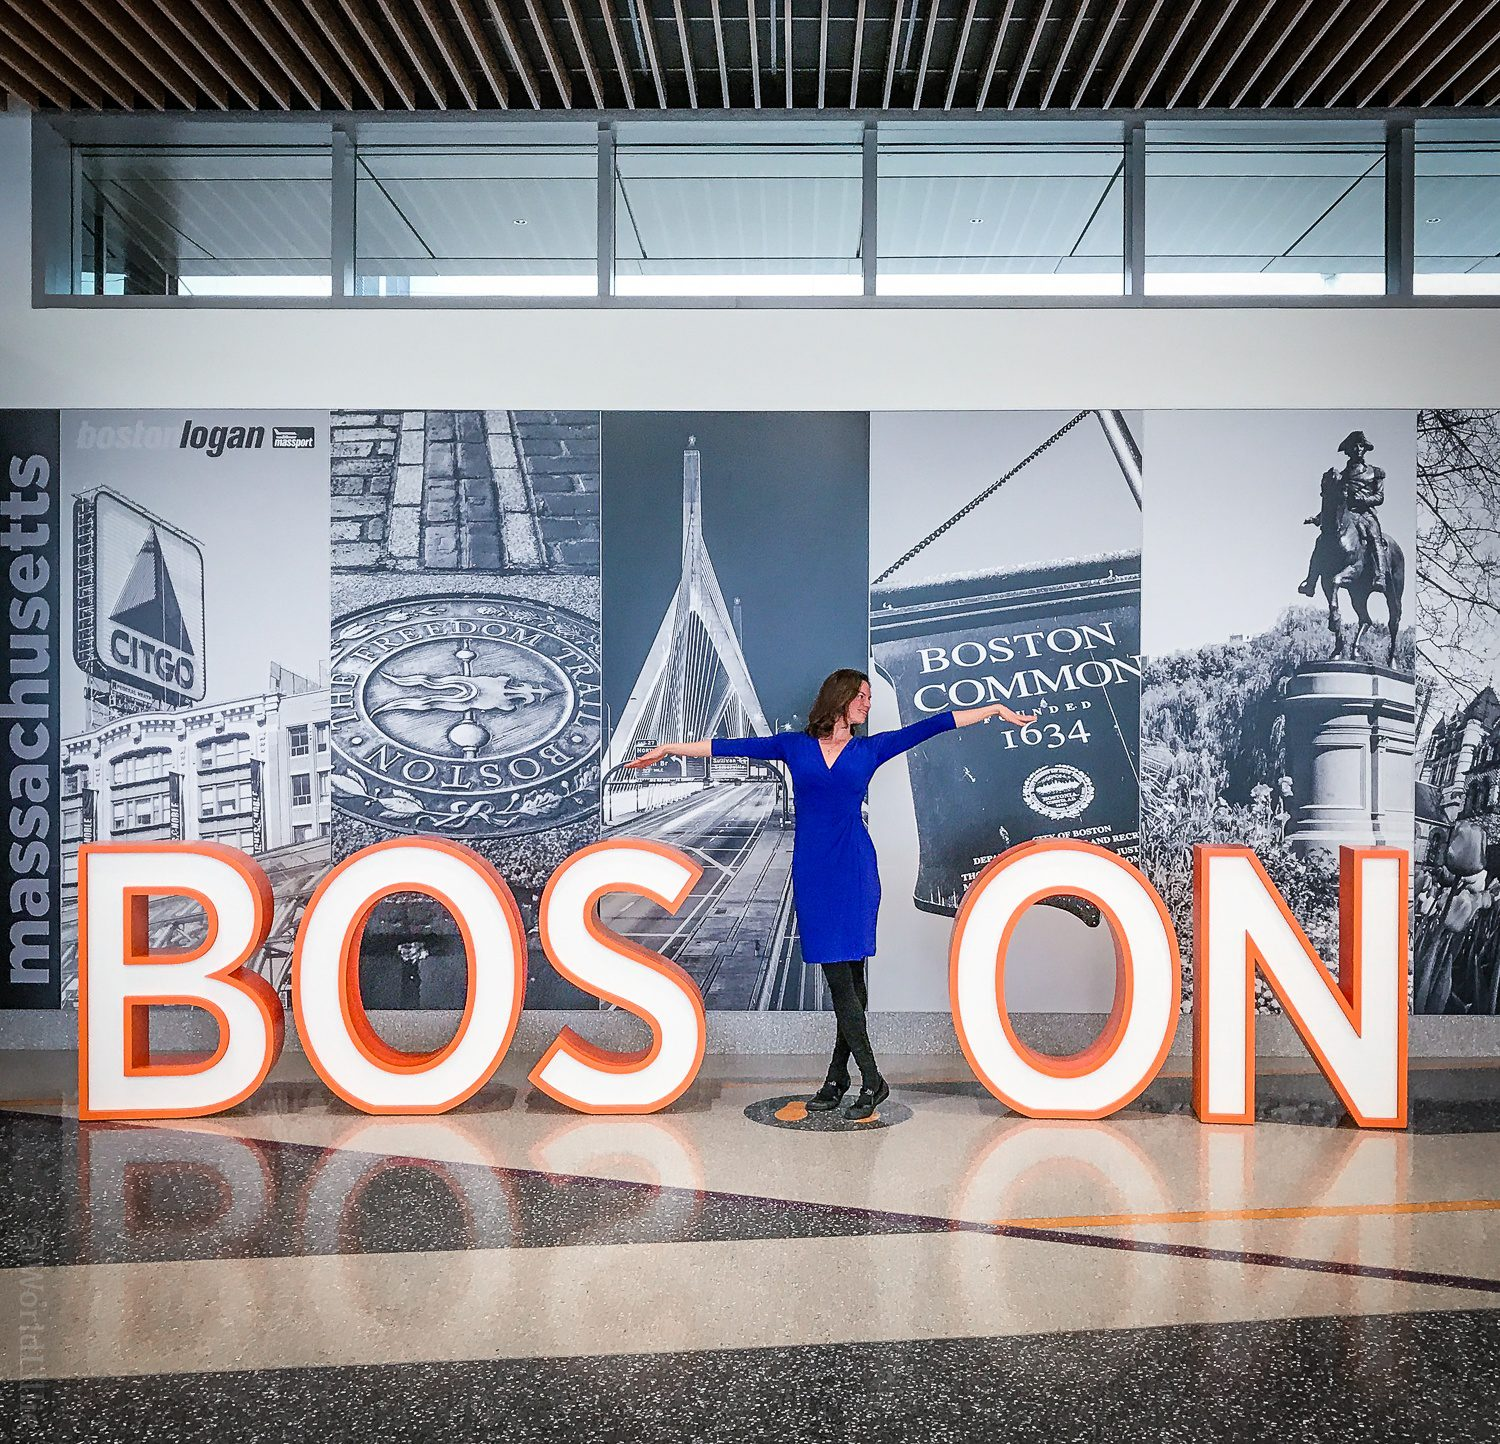 Oh Boston Logan Airport: So photogenic!